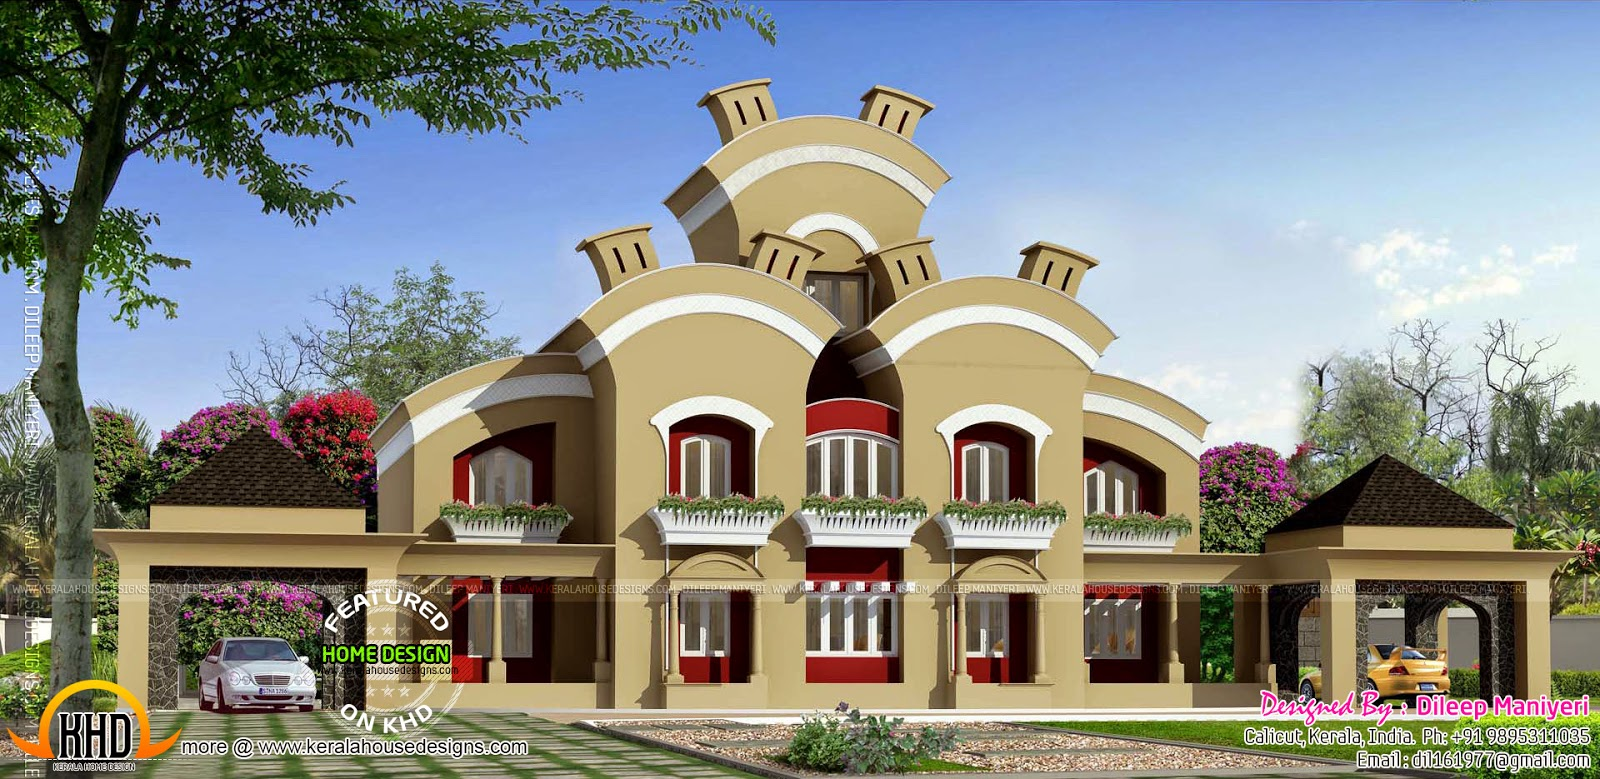 Home Design Interior Singapore Arabic Model House In India - House-of-bedrooms-style